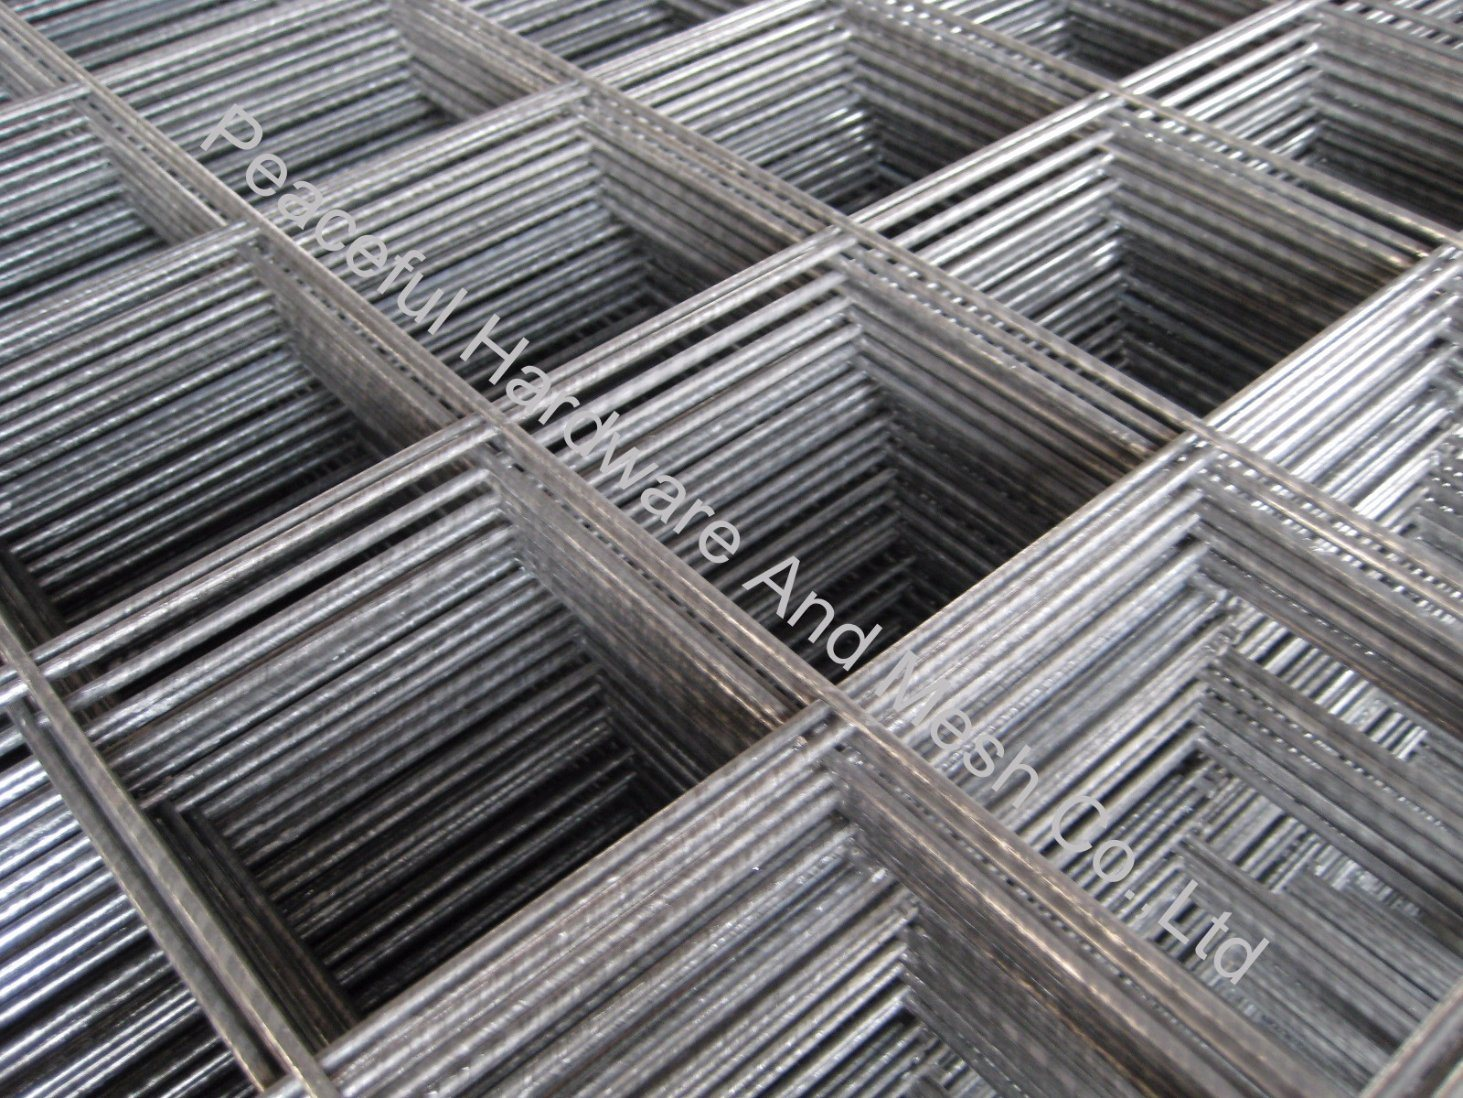 China Concrete Reinforcement Mesh/ Reinforcement Wire Mesh - China ...